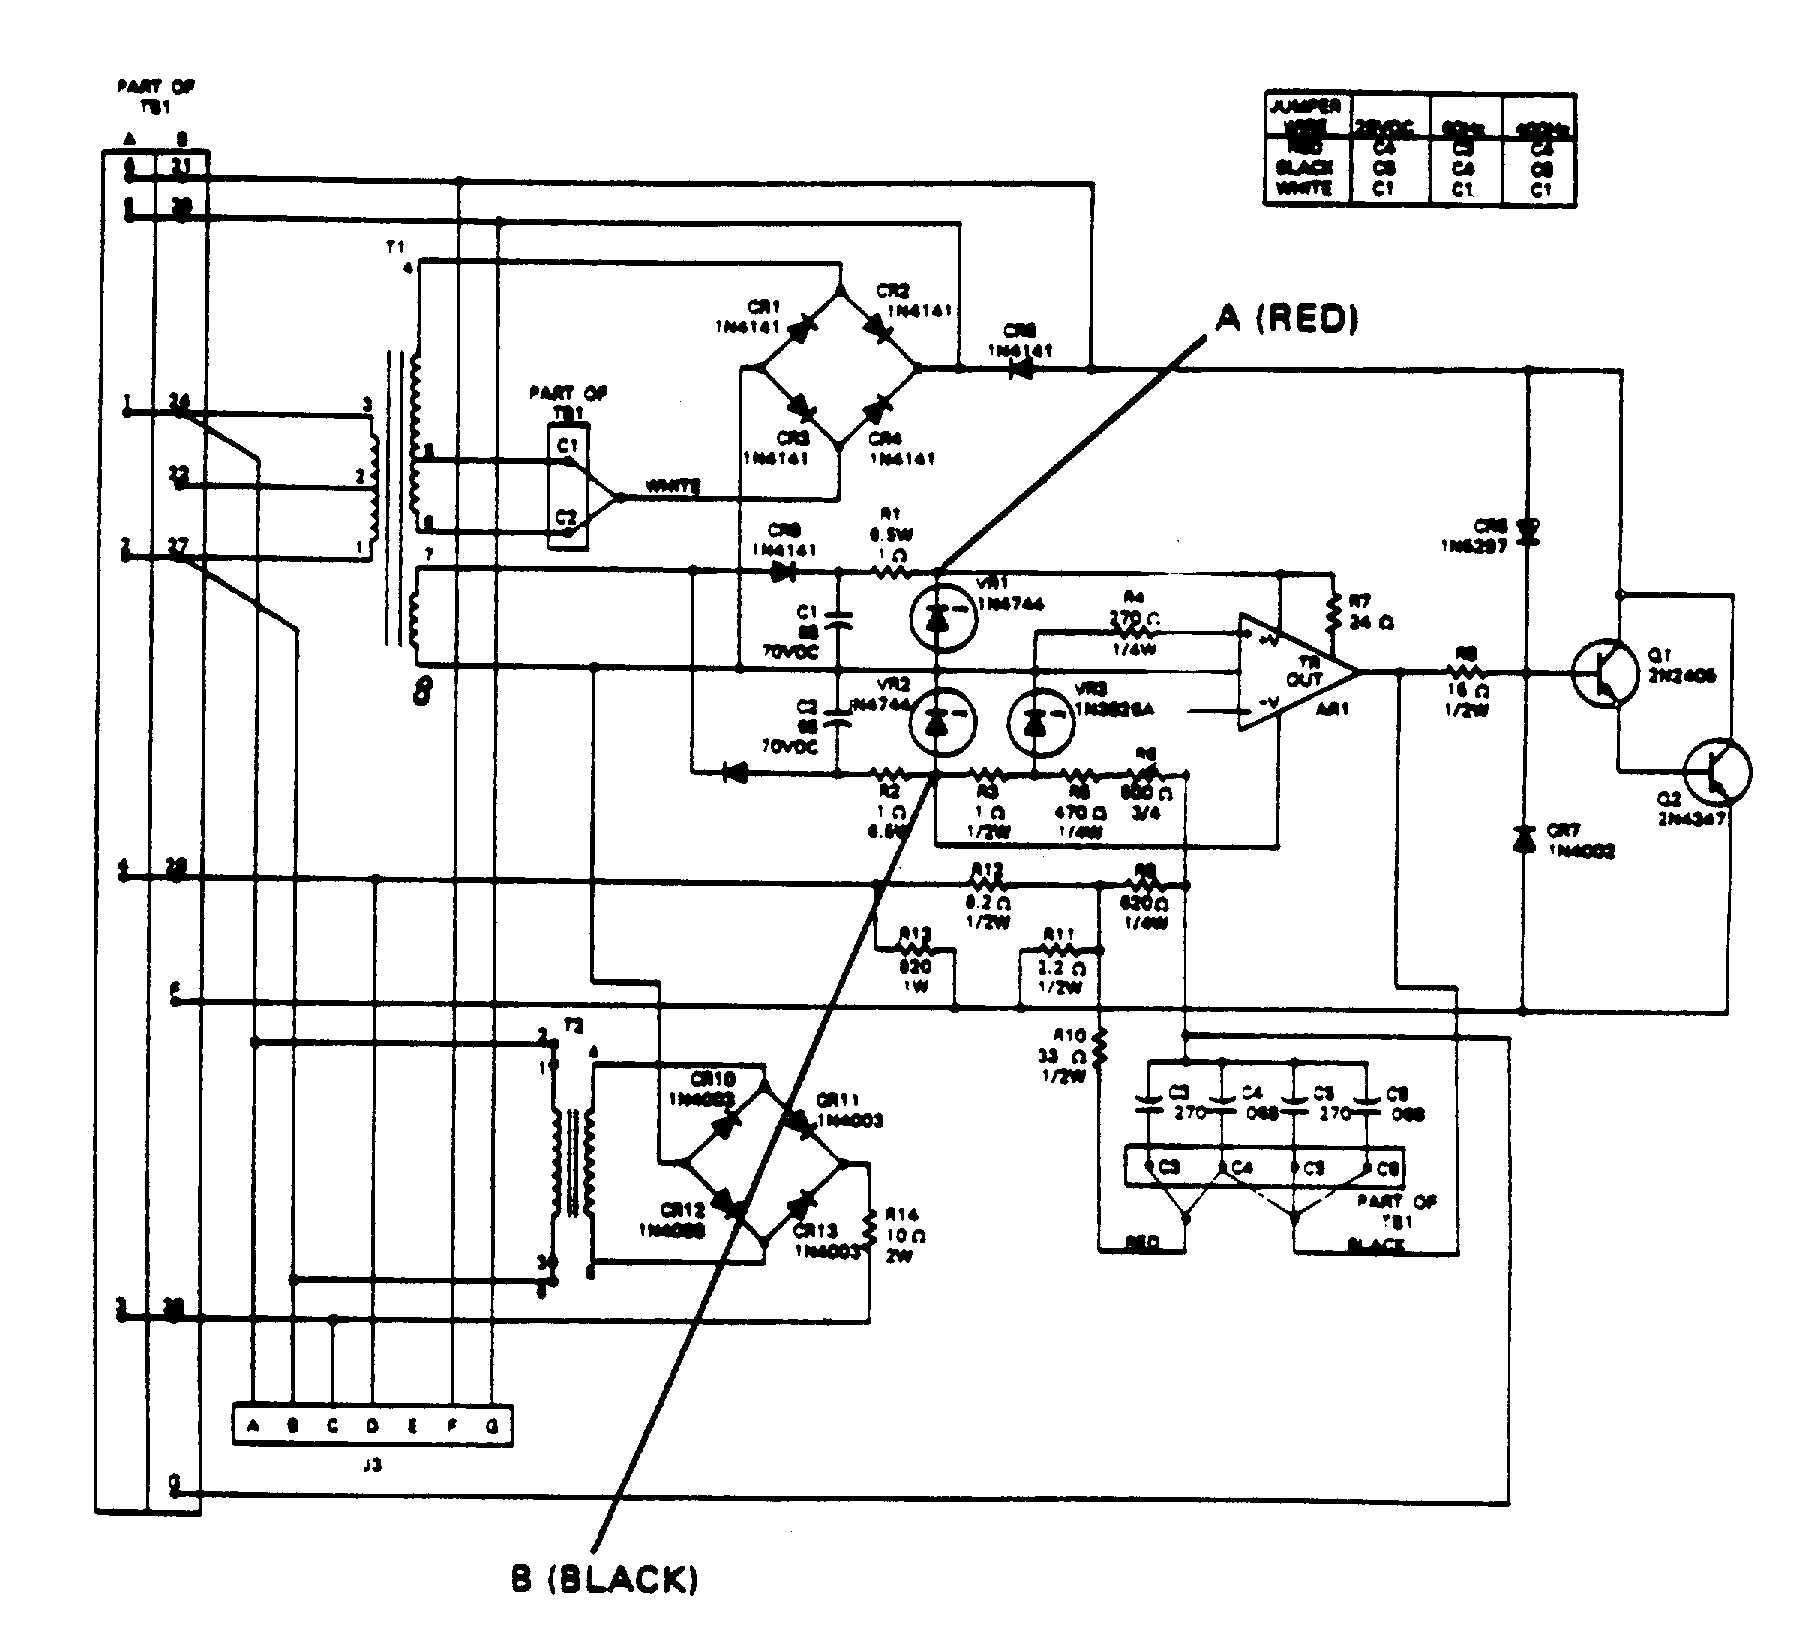 locate r6 on the printed circuit board